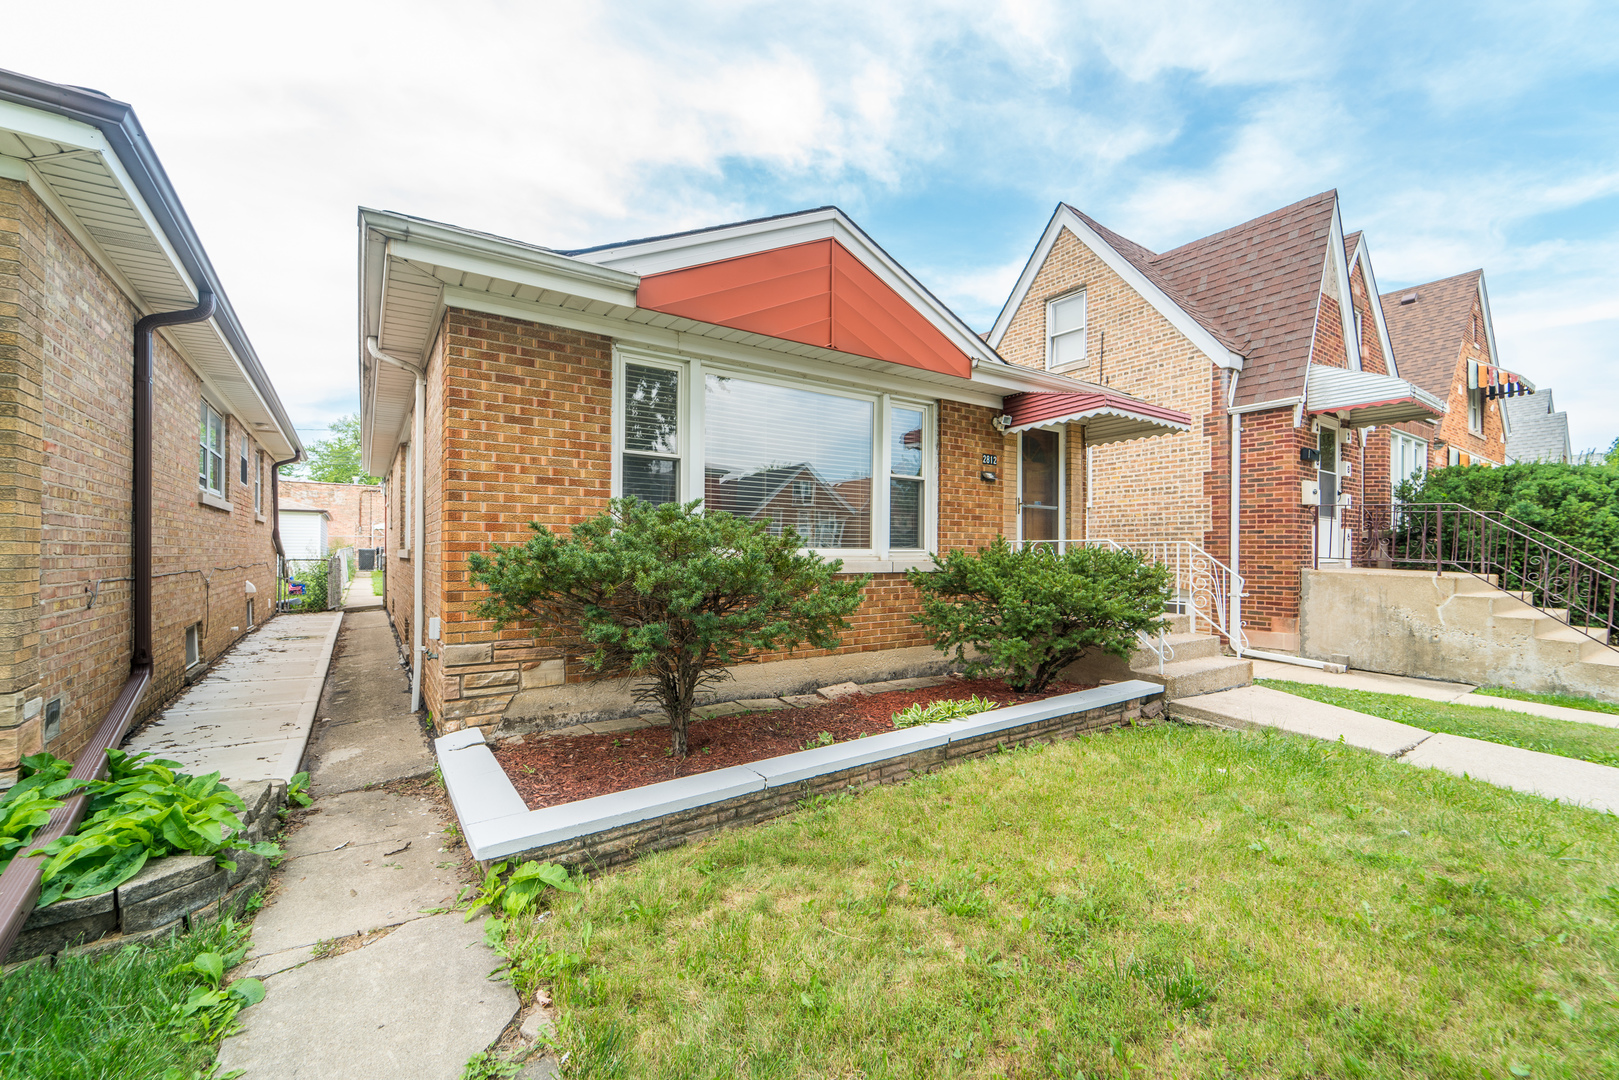 Photo of 2812 N Moody Avenue, Chicago, IL 60634